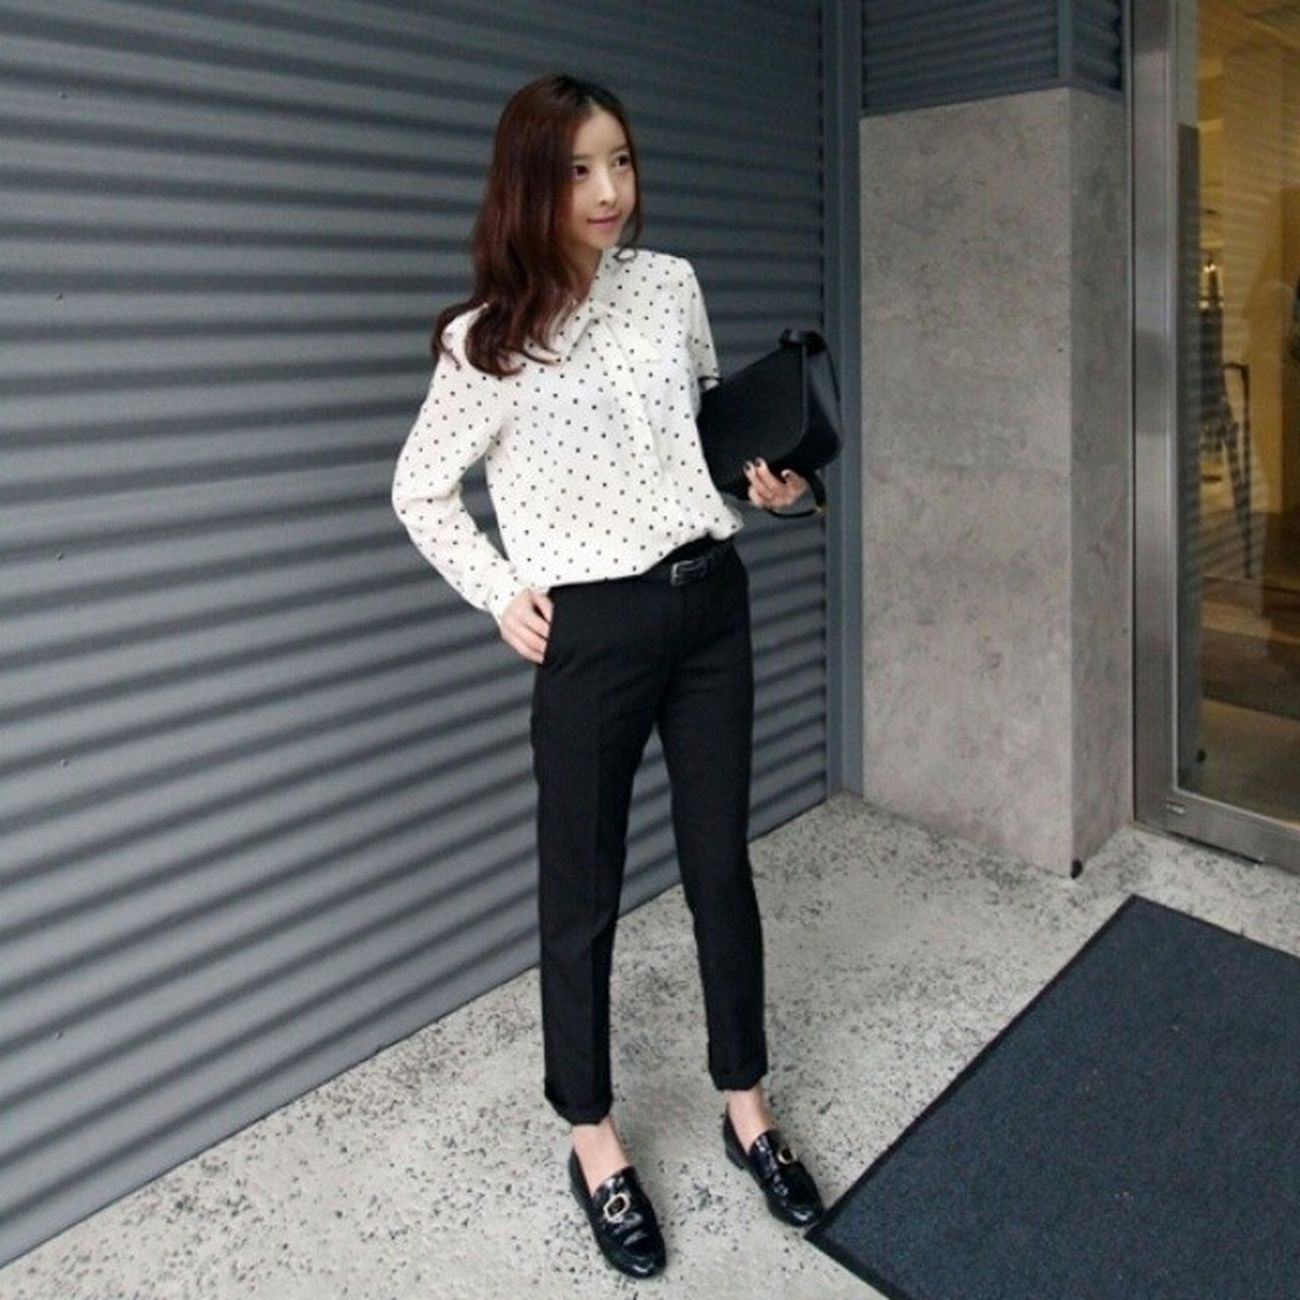 ➖ 도트블라우스 / 핏 예술 슬랙스 ? Dots Polka Blouse Slacks today ootd daily fashion photo loafers Celine classicbox